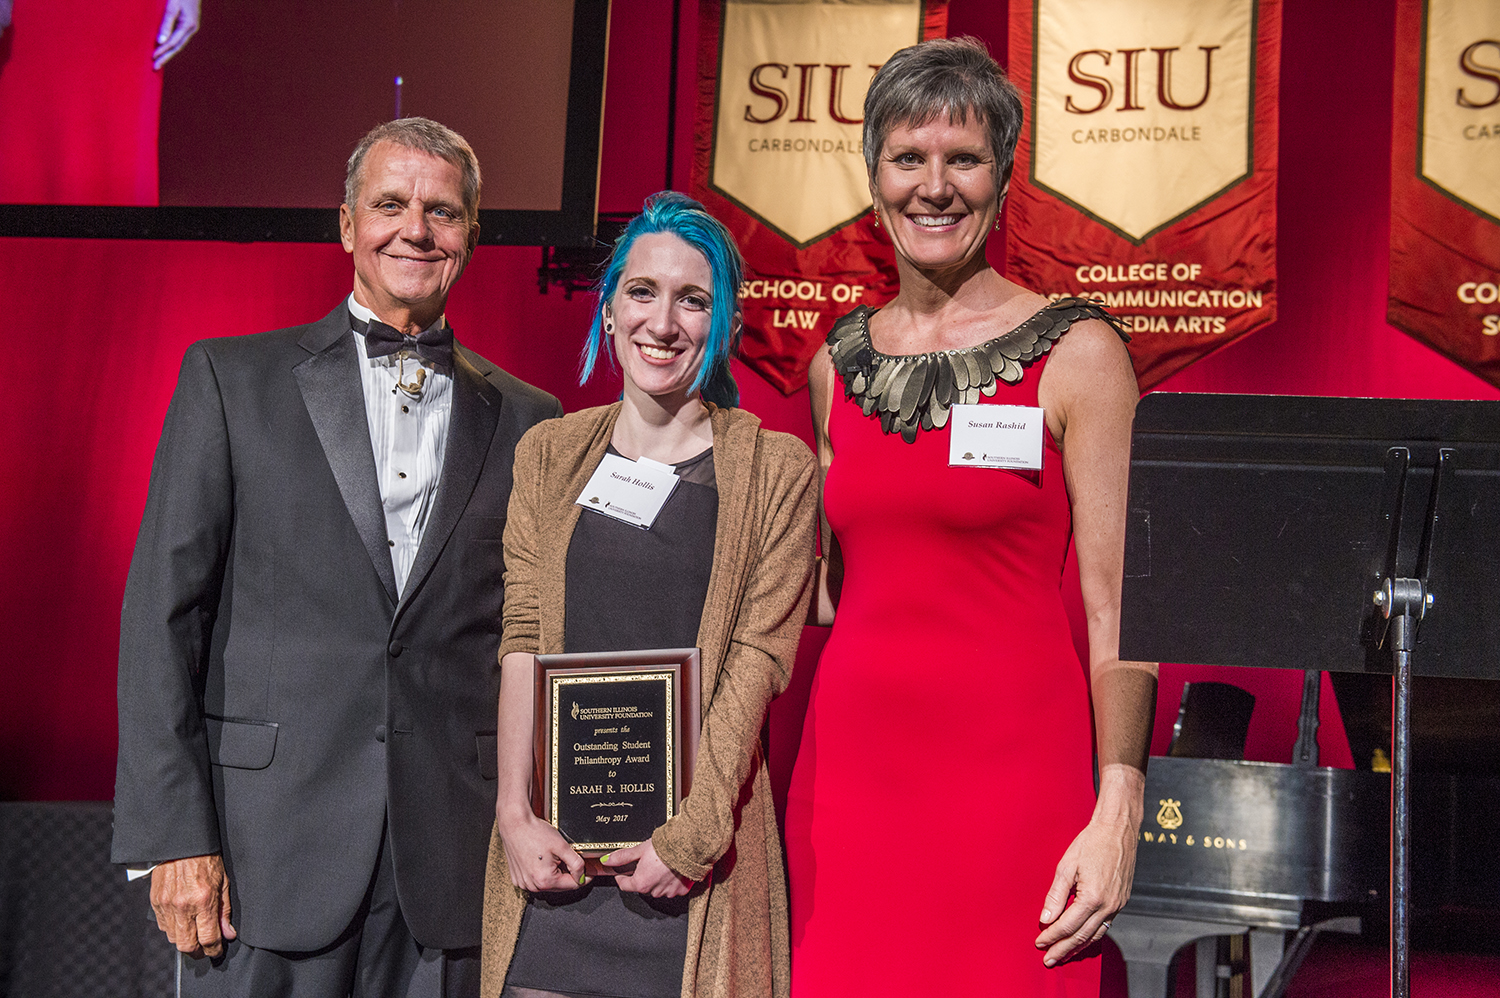 Sarah Hollis is the first recipient of the SIU Foundation's Outstanding Student Philanthropy Award. Roger Tedrick, SIU Foundation board president, and Susan Rashid, SIU Foundation board president-elect, presented Hollis with this award at the SIU Foundation 75th Anniversary Celebration on May 6, 2017.